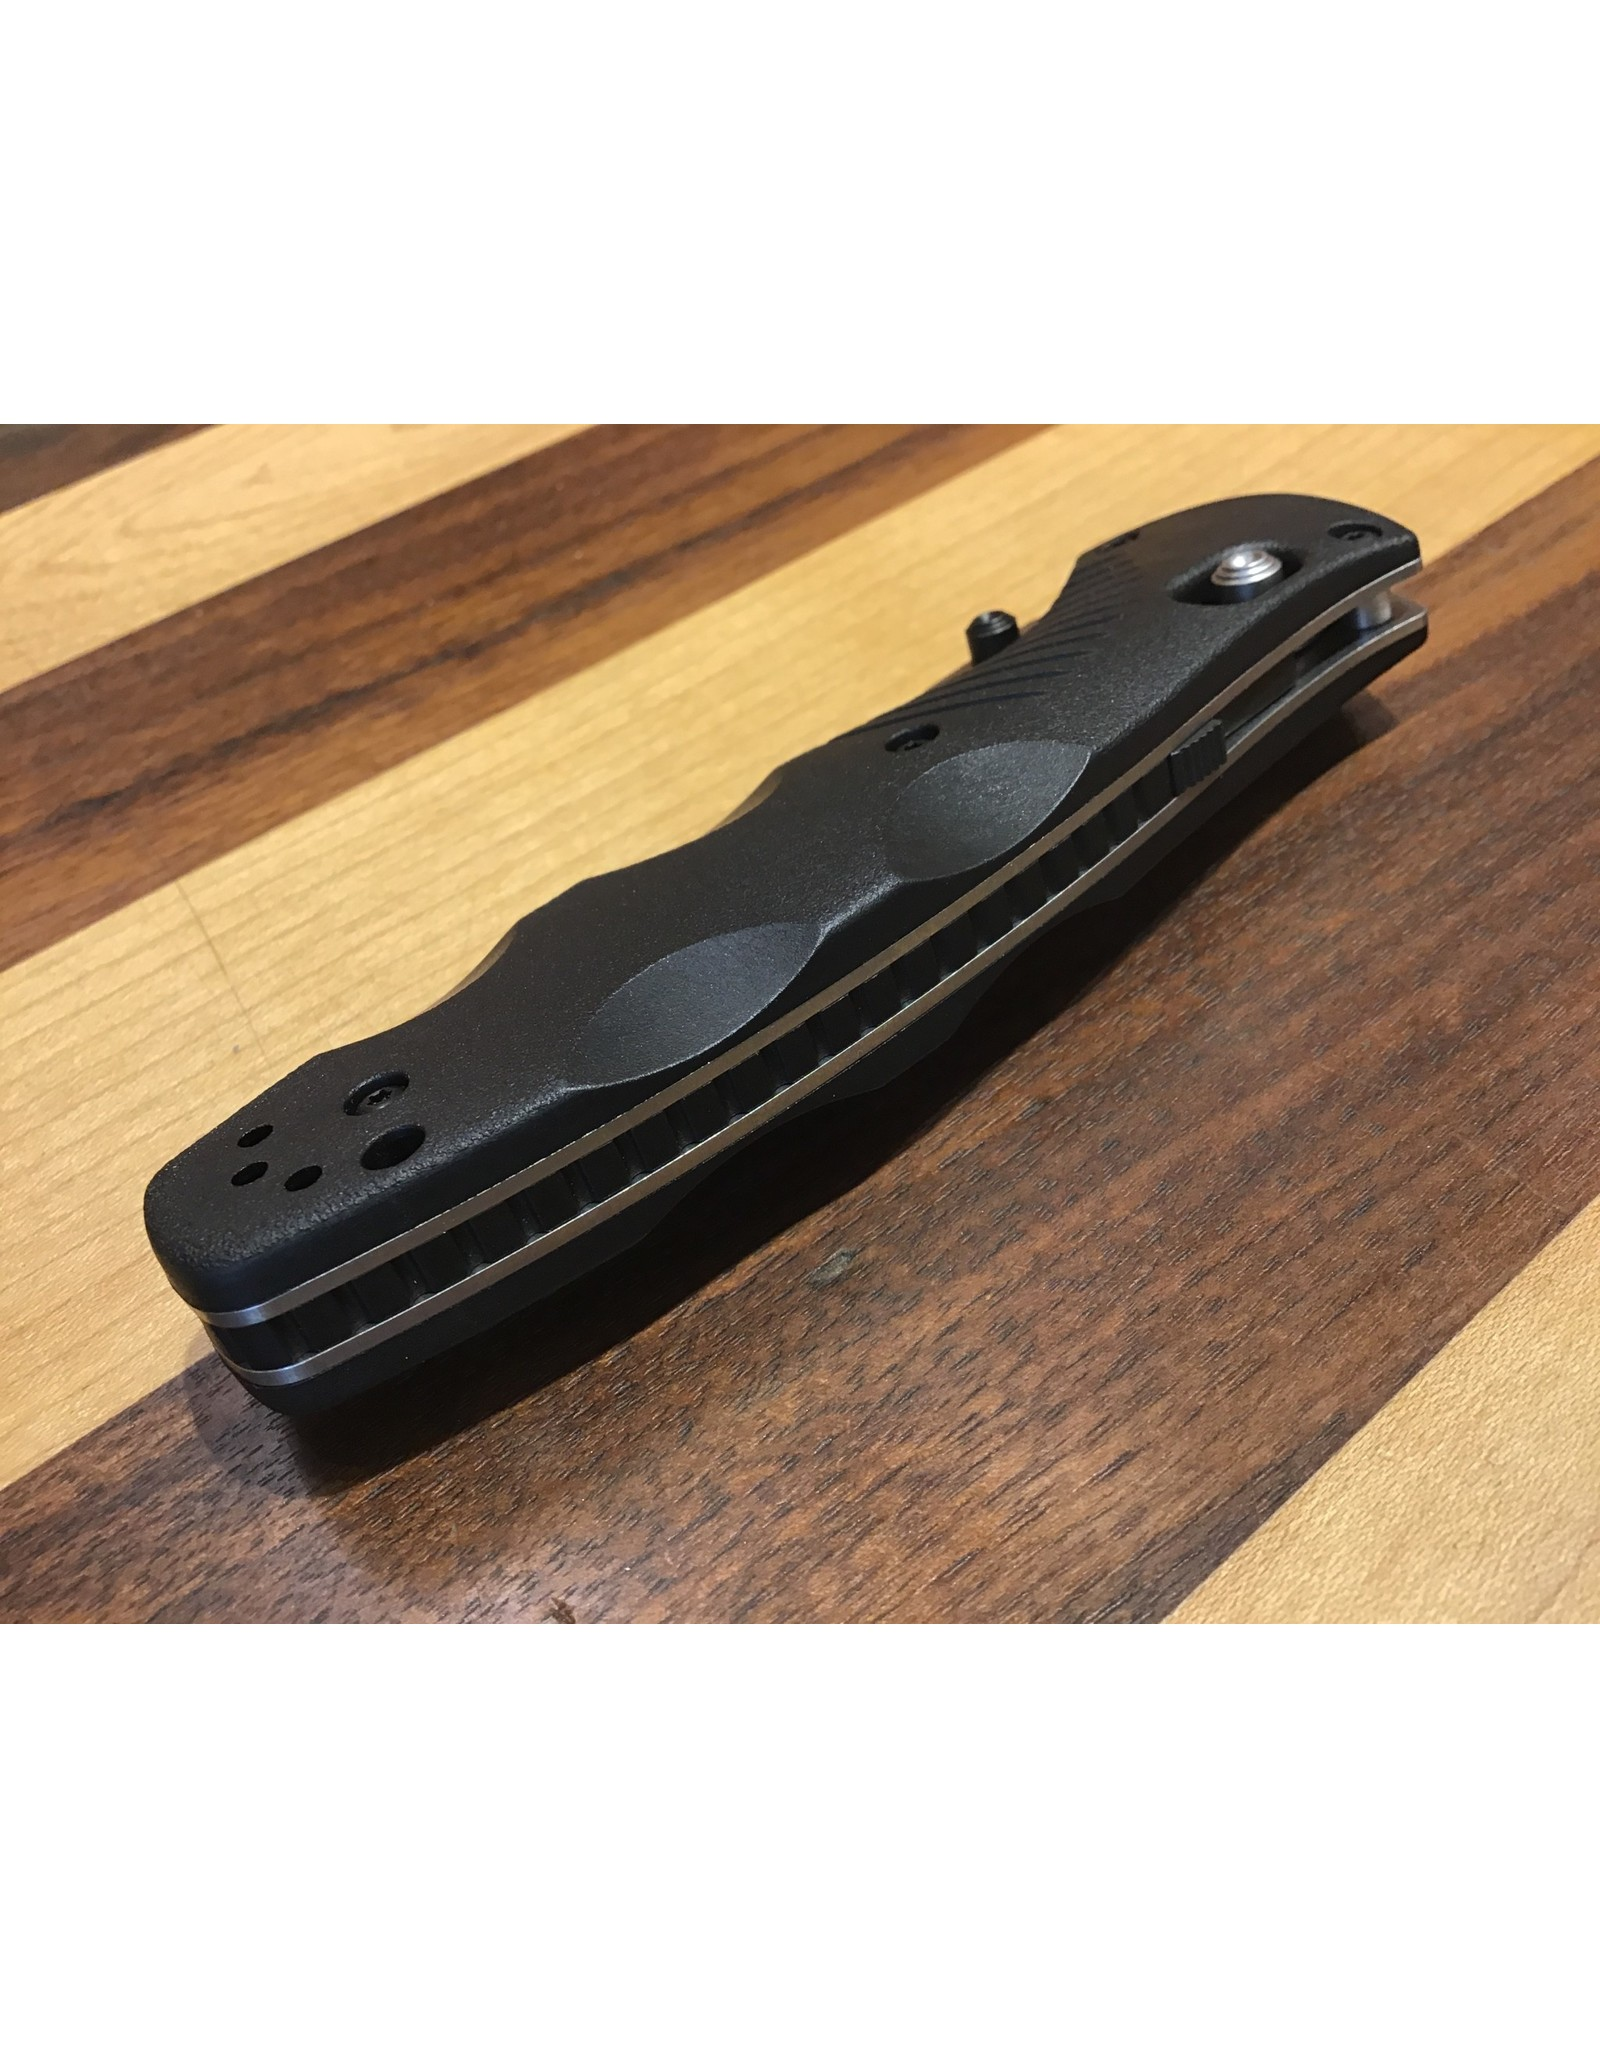 Benchmade Barrage